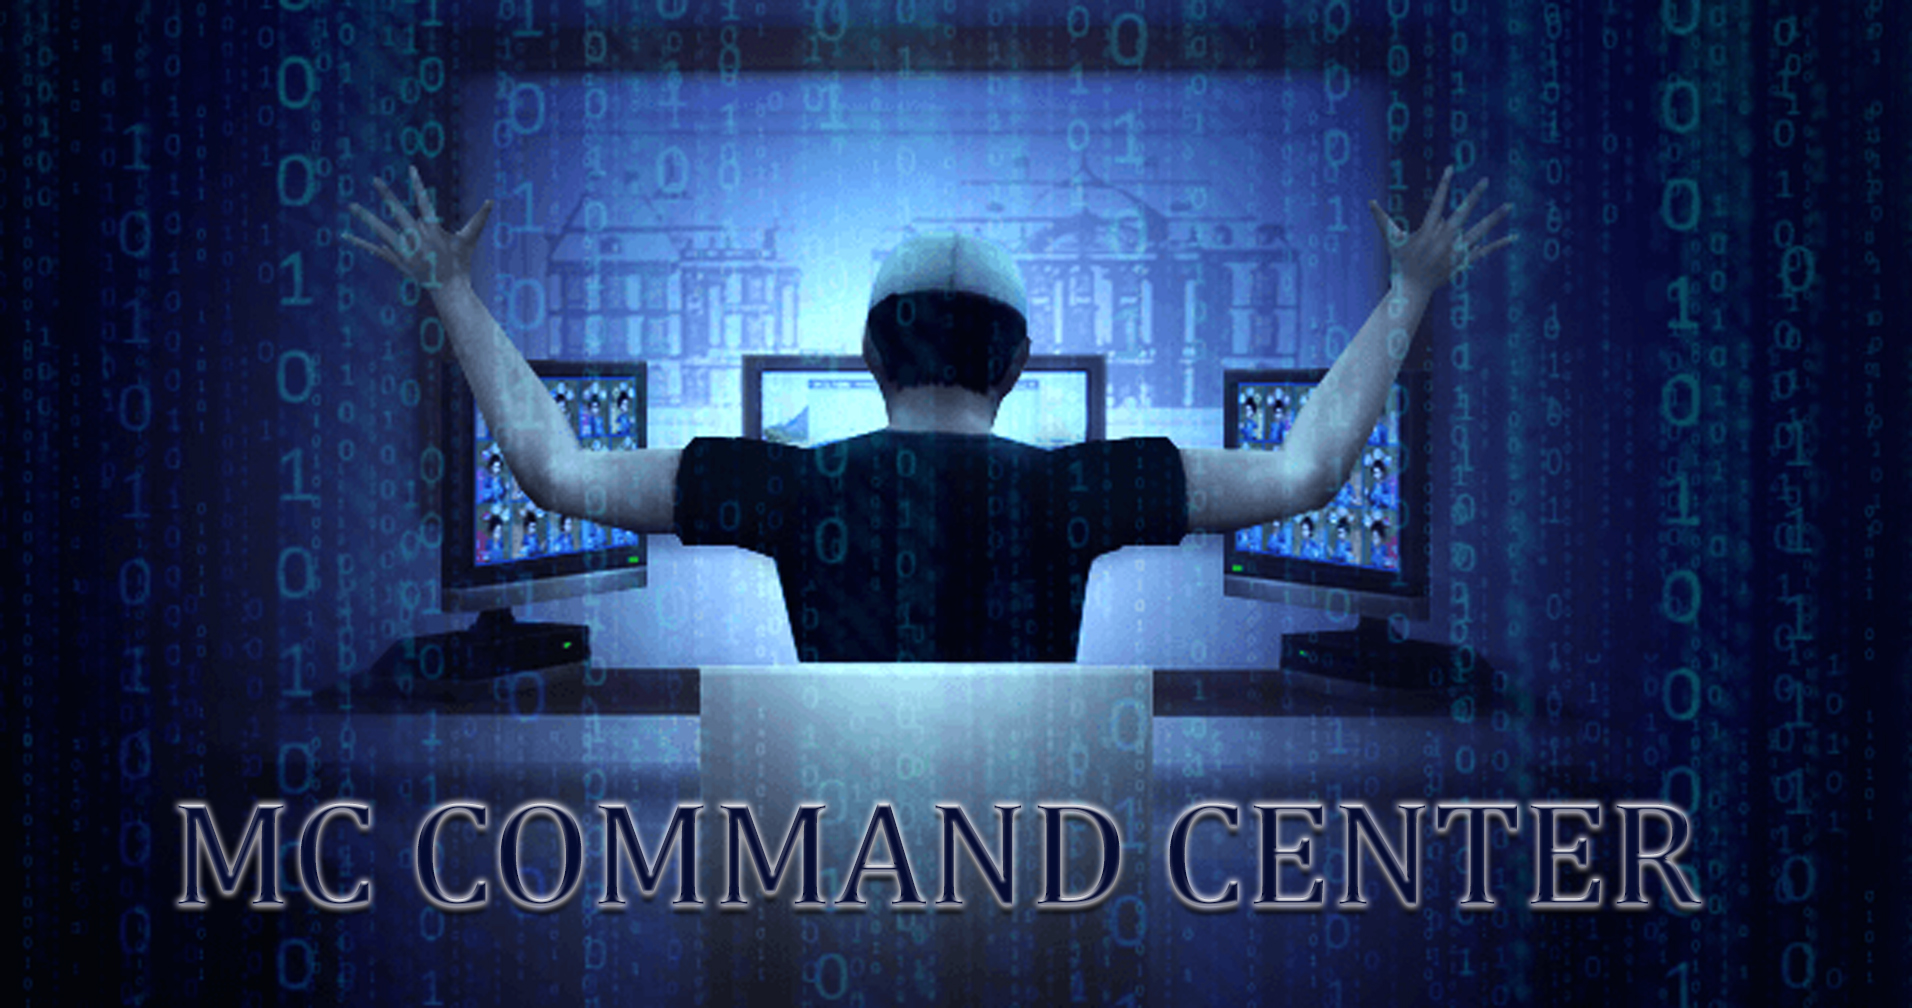 MC Command Center by Deaderpool